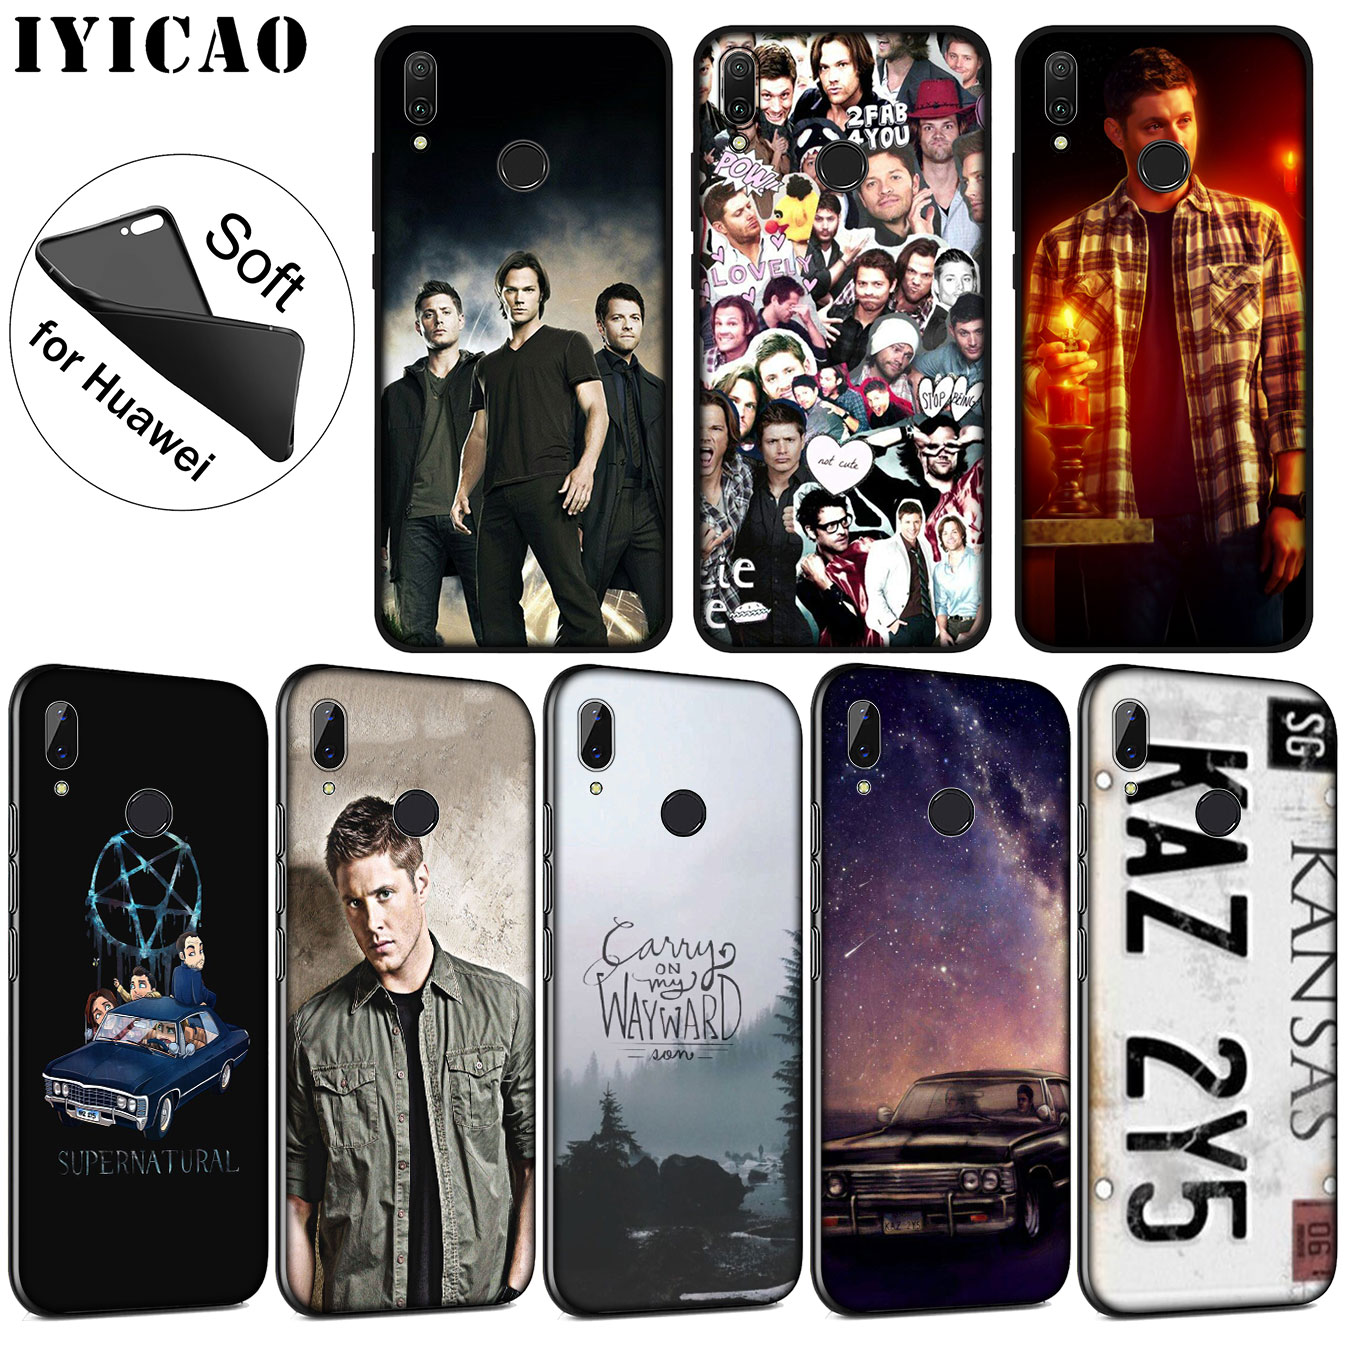 IYICAO Supernatural Jared Padalecki Soft Silicone Case for Huawei P30 P20 Pro P10 P9 P8 Lite Mini 2017 2016 2015 P smart Z 2019 image